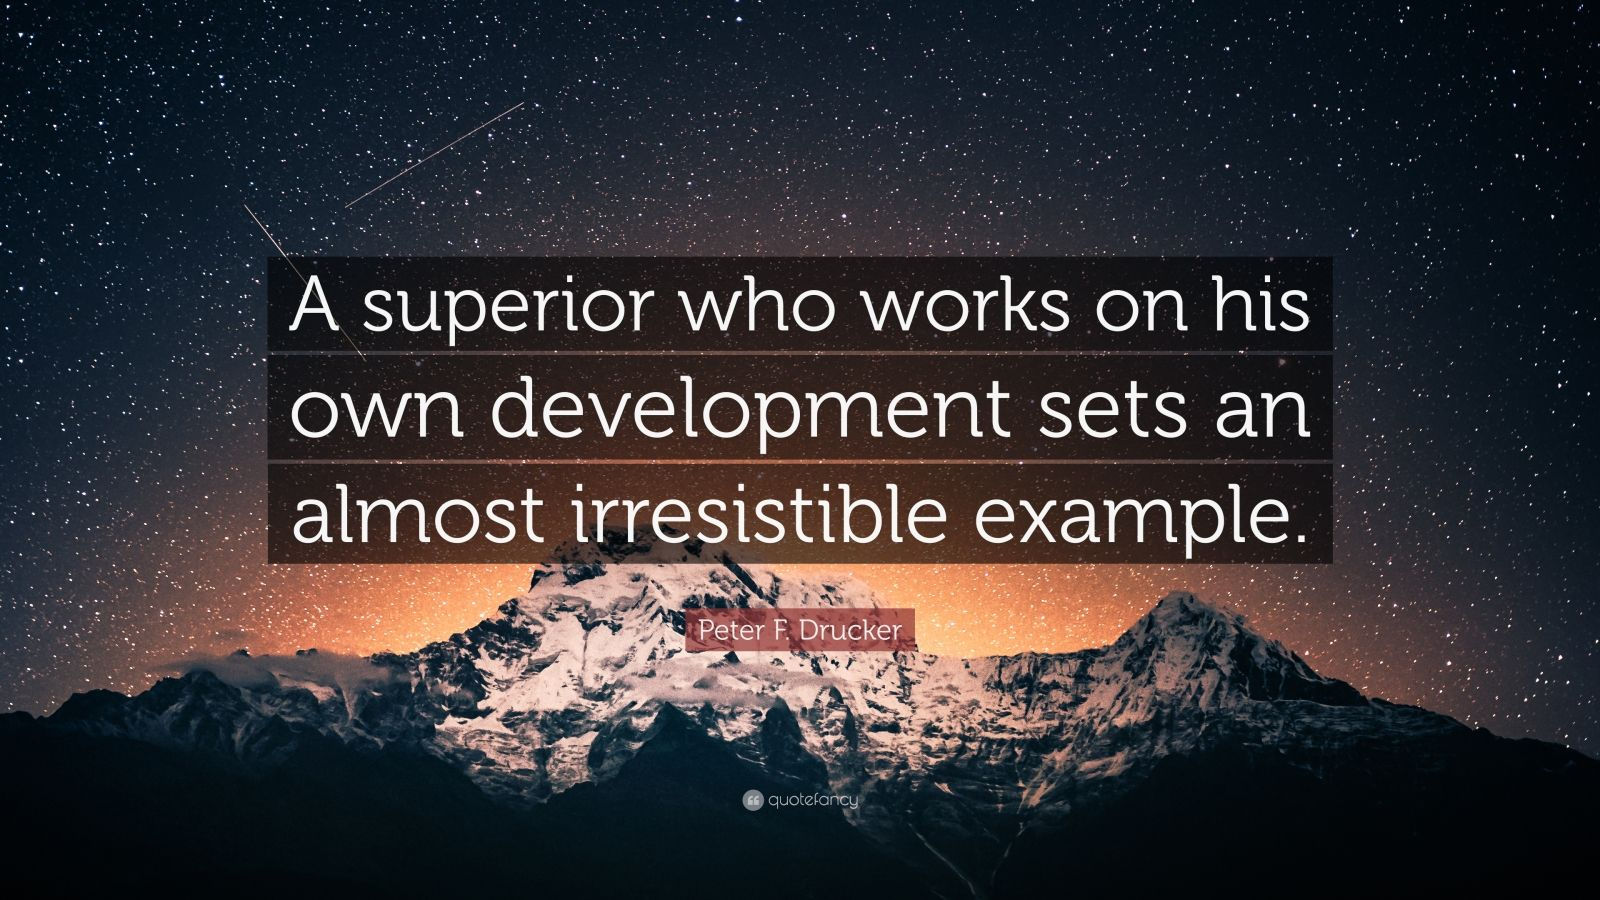 """Peter F. Drucker Quote: """"A superior who works on his own development sets an almost irresistible example."""""""